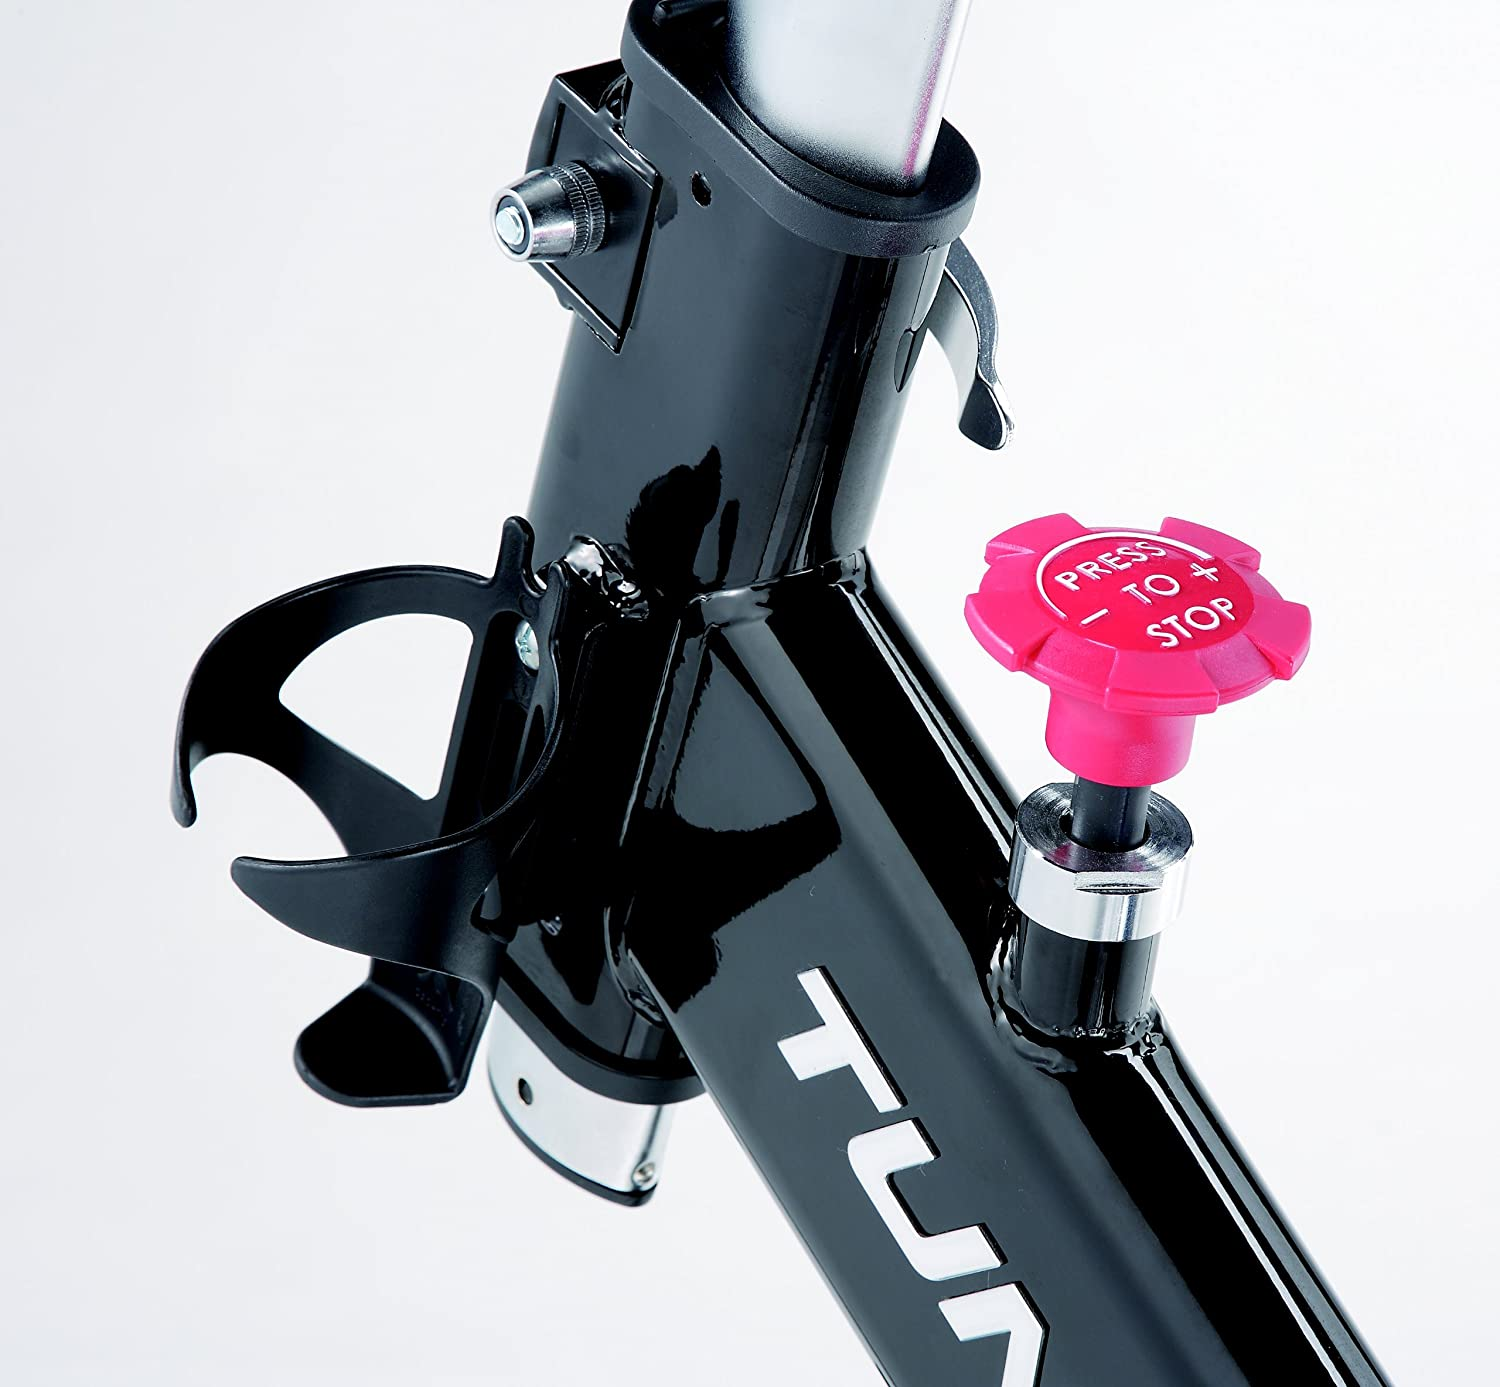 TUNTURI PLATINUM SPING SPRINTER BIKE: Amazon.es: Deportes y aire libre